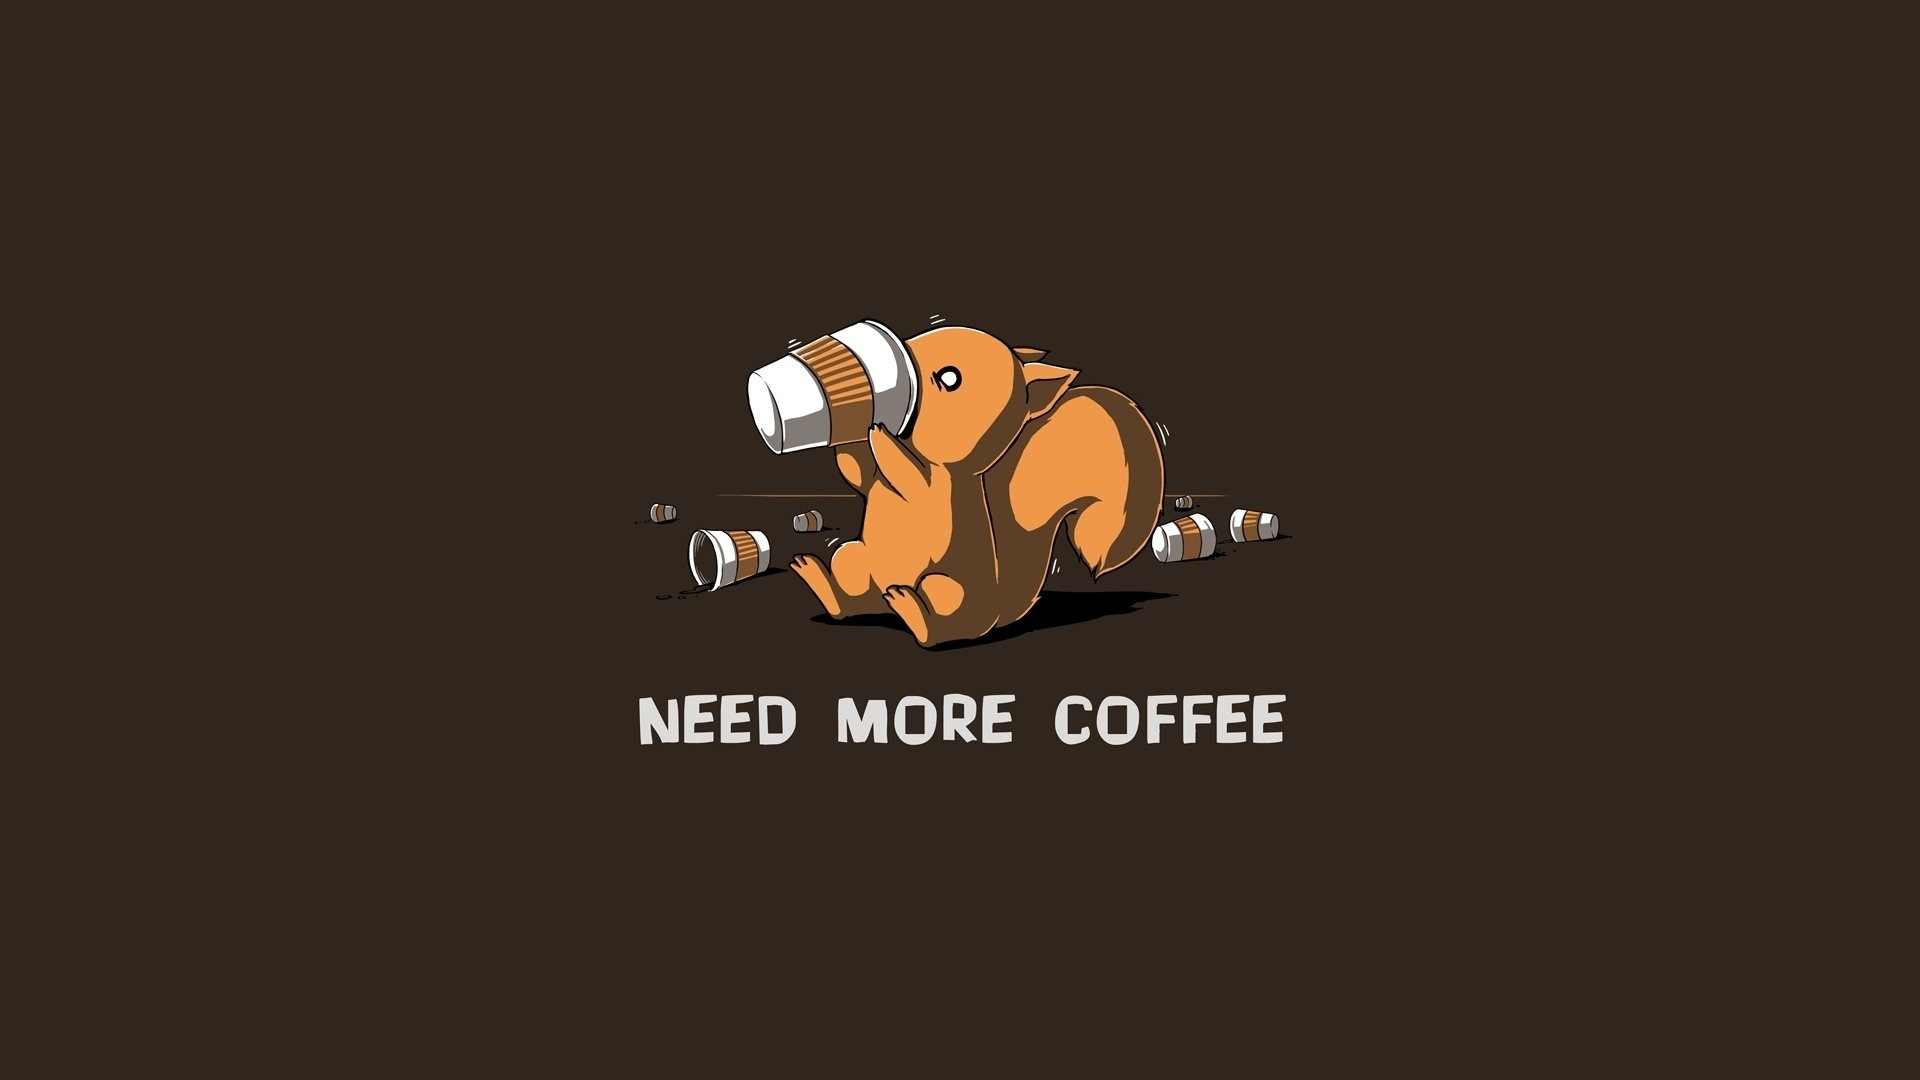 Funny Wallpapers Funny Pc Wallpapers Laptop Wallpapers: Funny Food Wallpapers